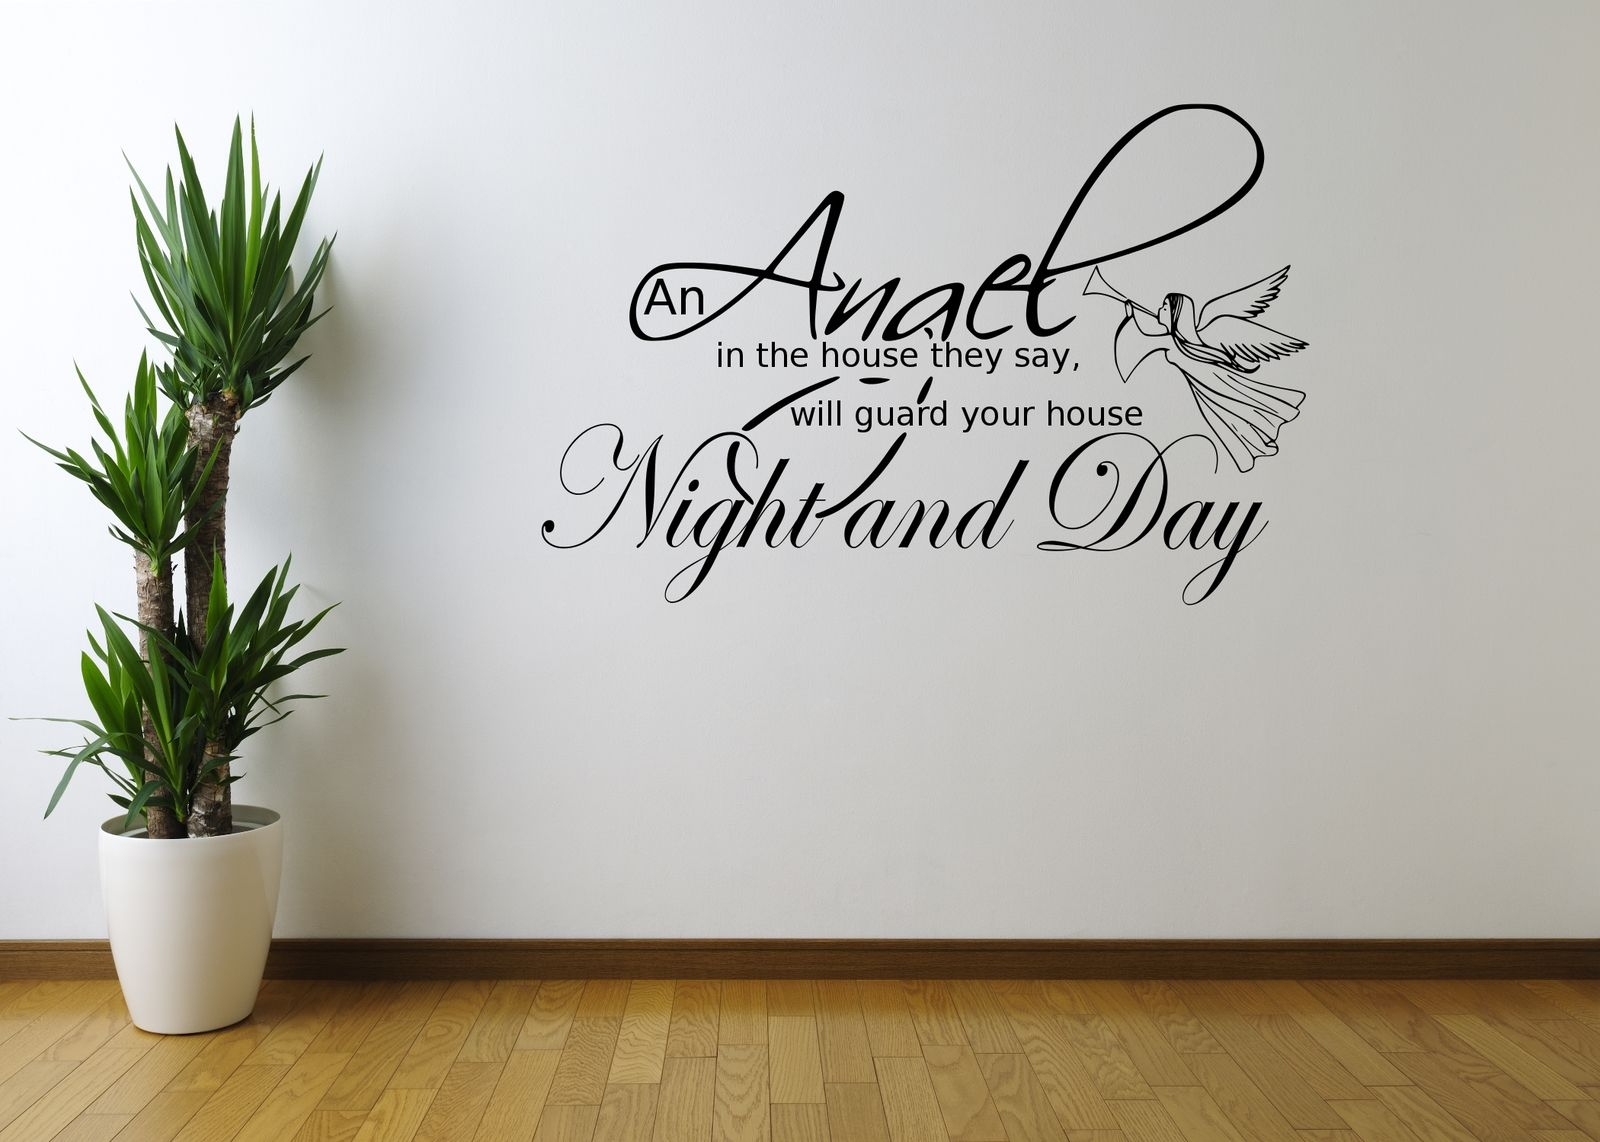 Angel night home quote art wall sticker decal mural for Custom vinyl mural prints